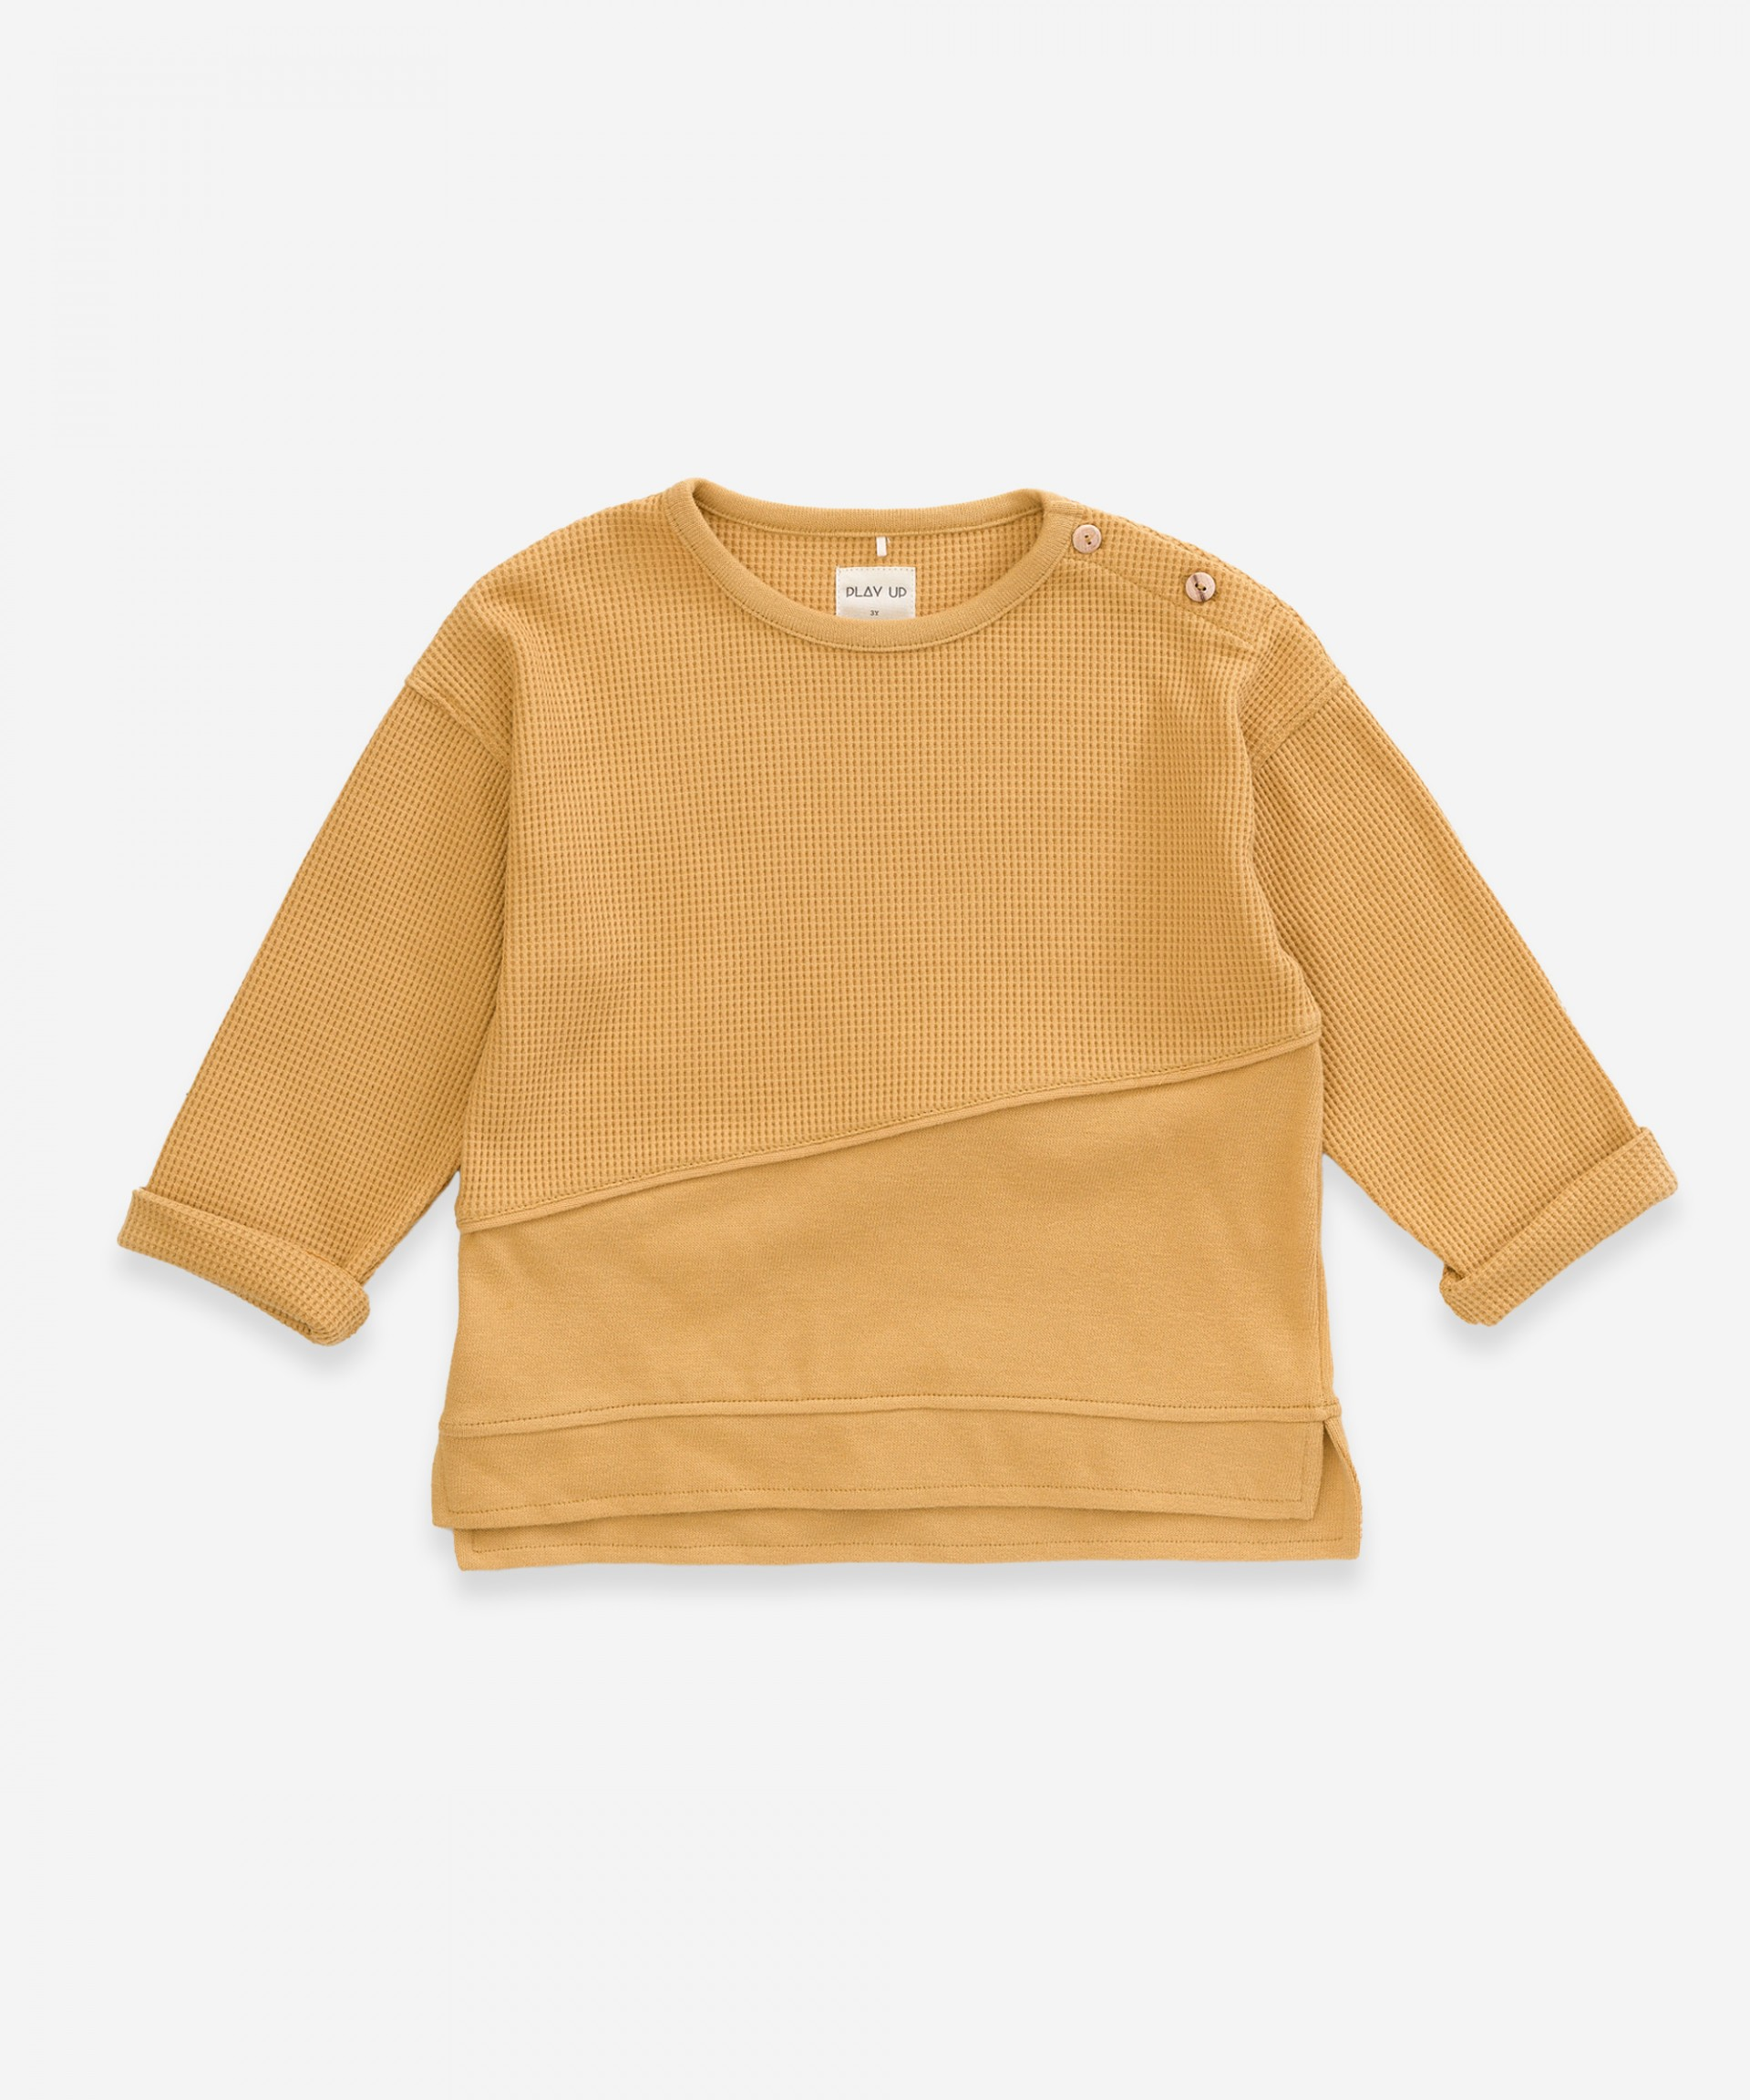 Sweater in organic cotton | Weaving